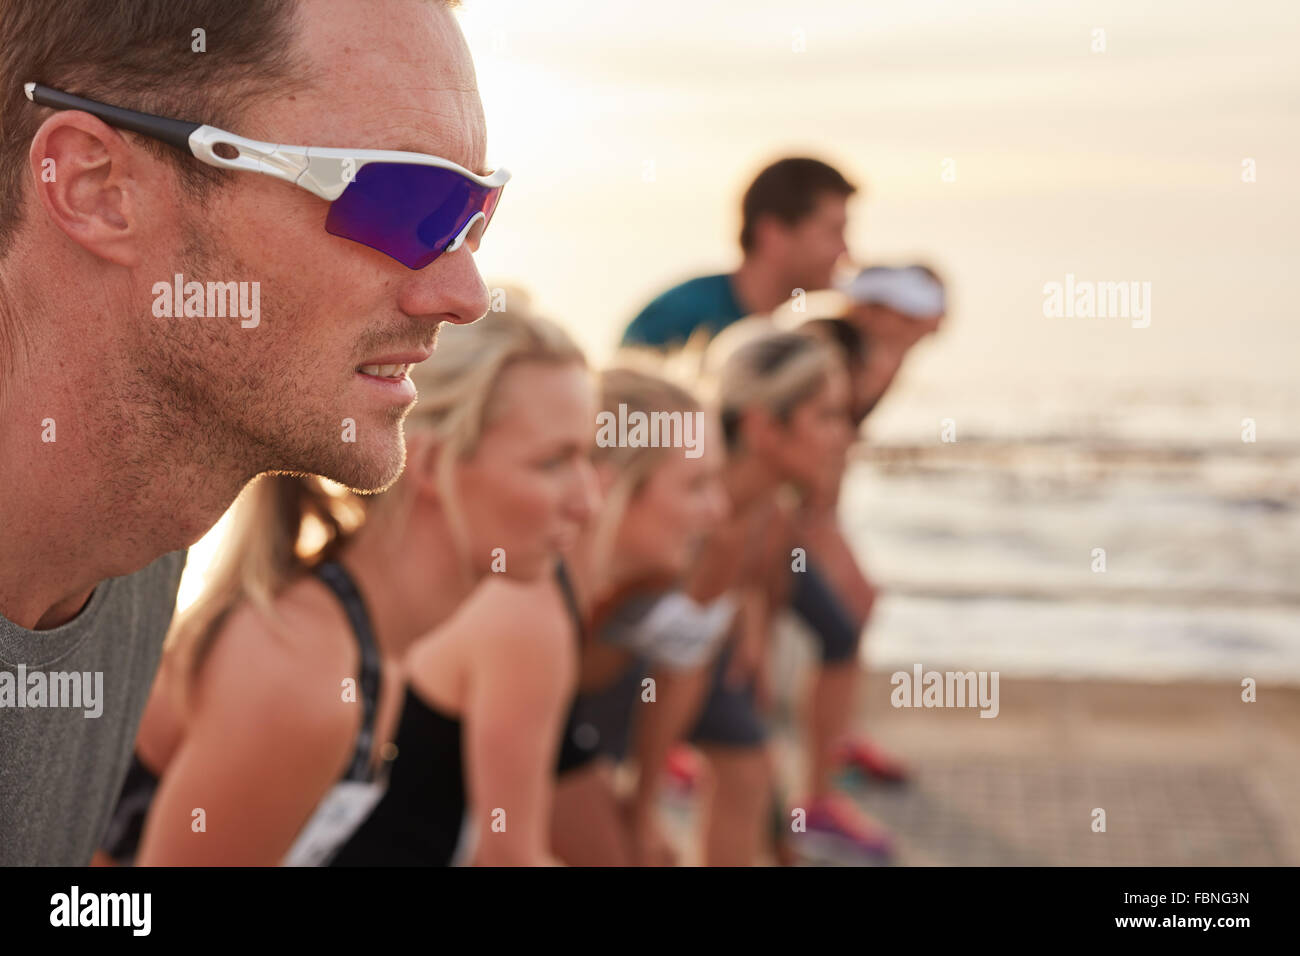 Closeup shot of focused and determined young man standing at starting line with competitors in background. Runners - Stock Image